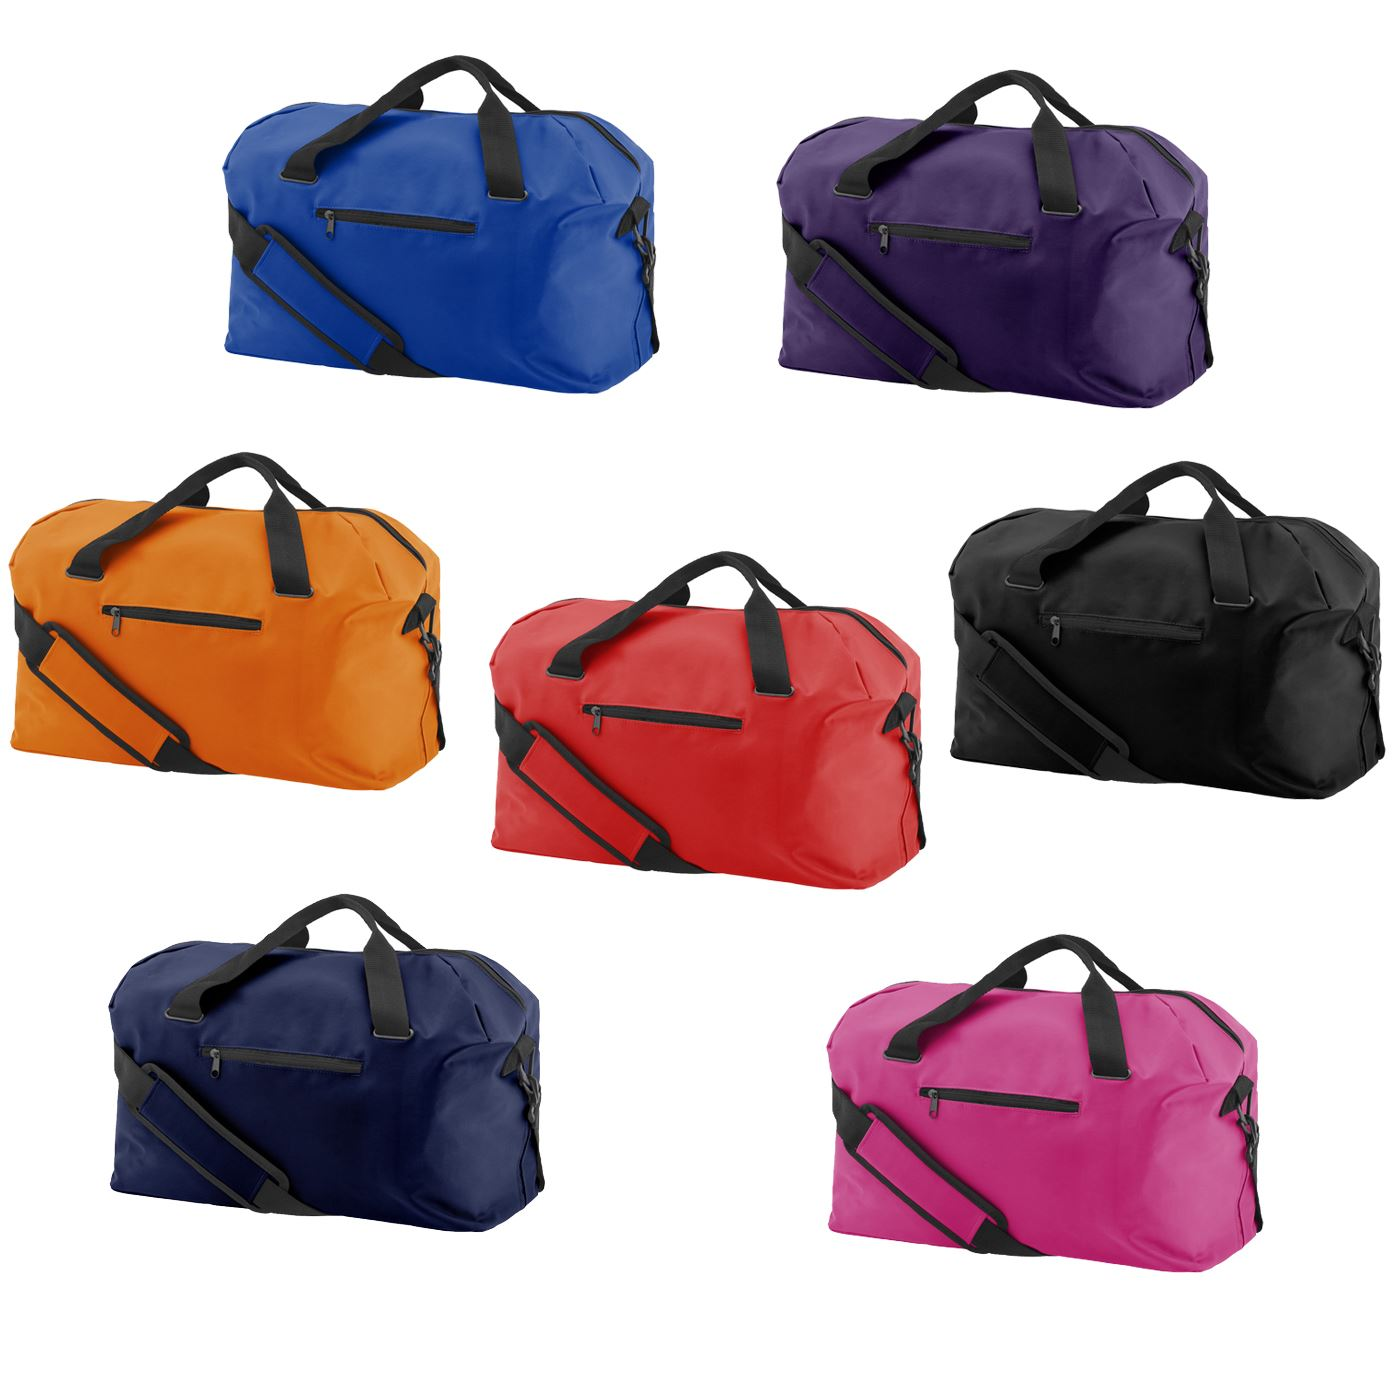 3c8489d98e AWDis Gym Bag Footbal Training Kit Duffle Holdall Sports Travel Weekend  Luggage. ITEM DESCRIPTION